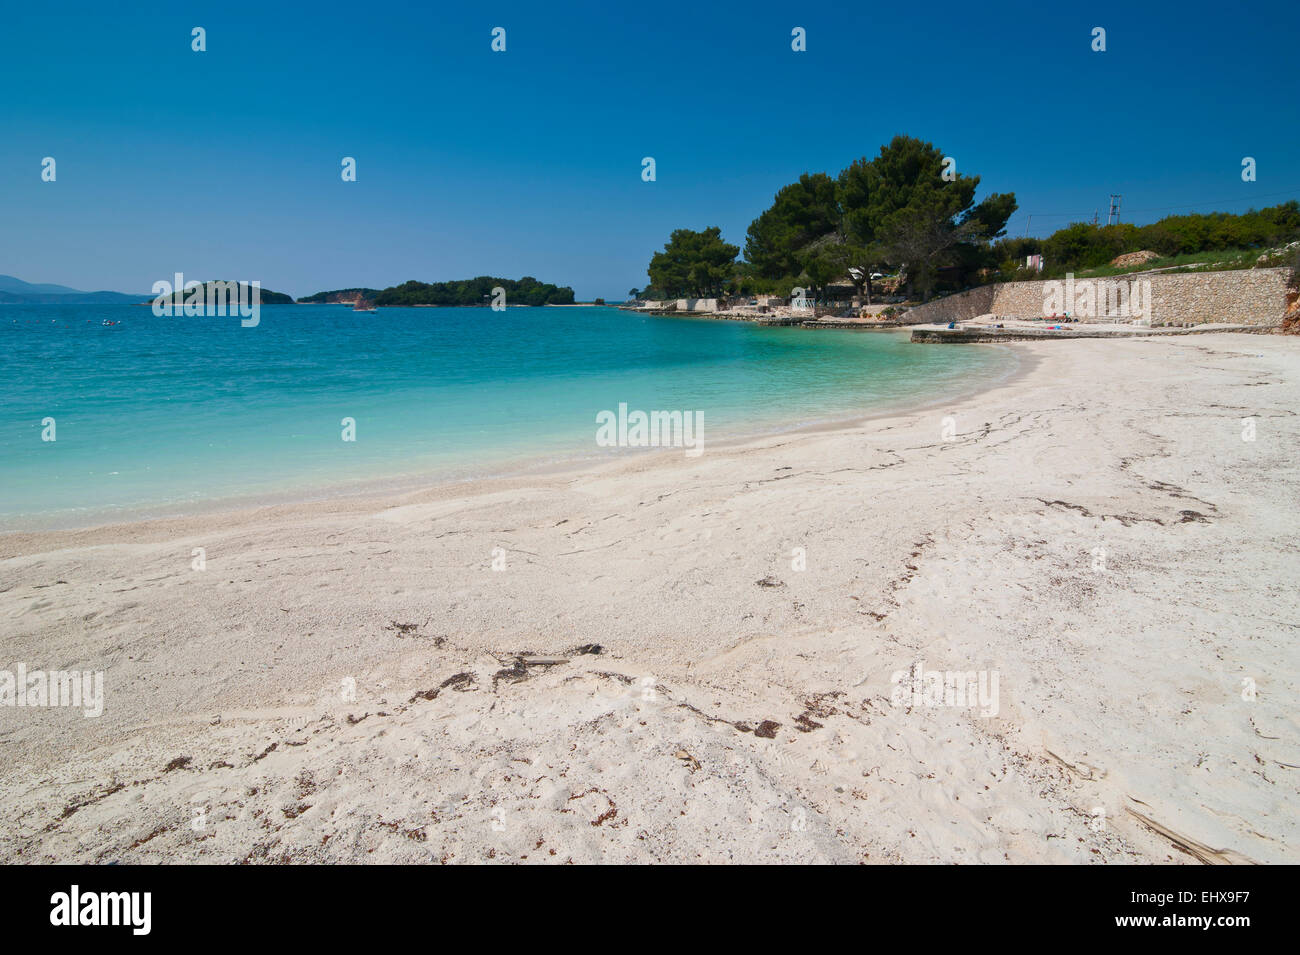 White sand beach and turquoise water at Ksamil, Albania - Stock Image